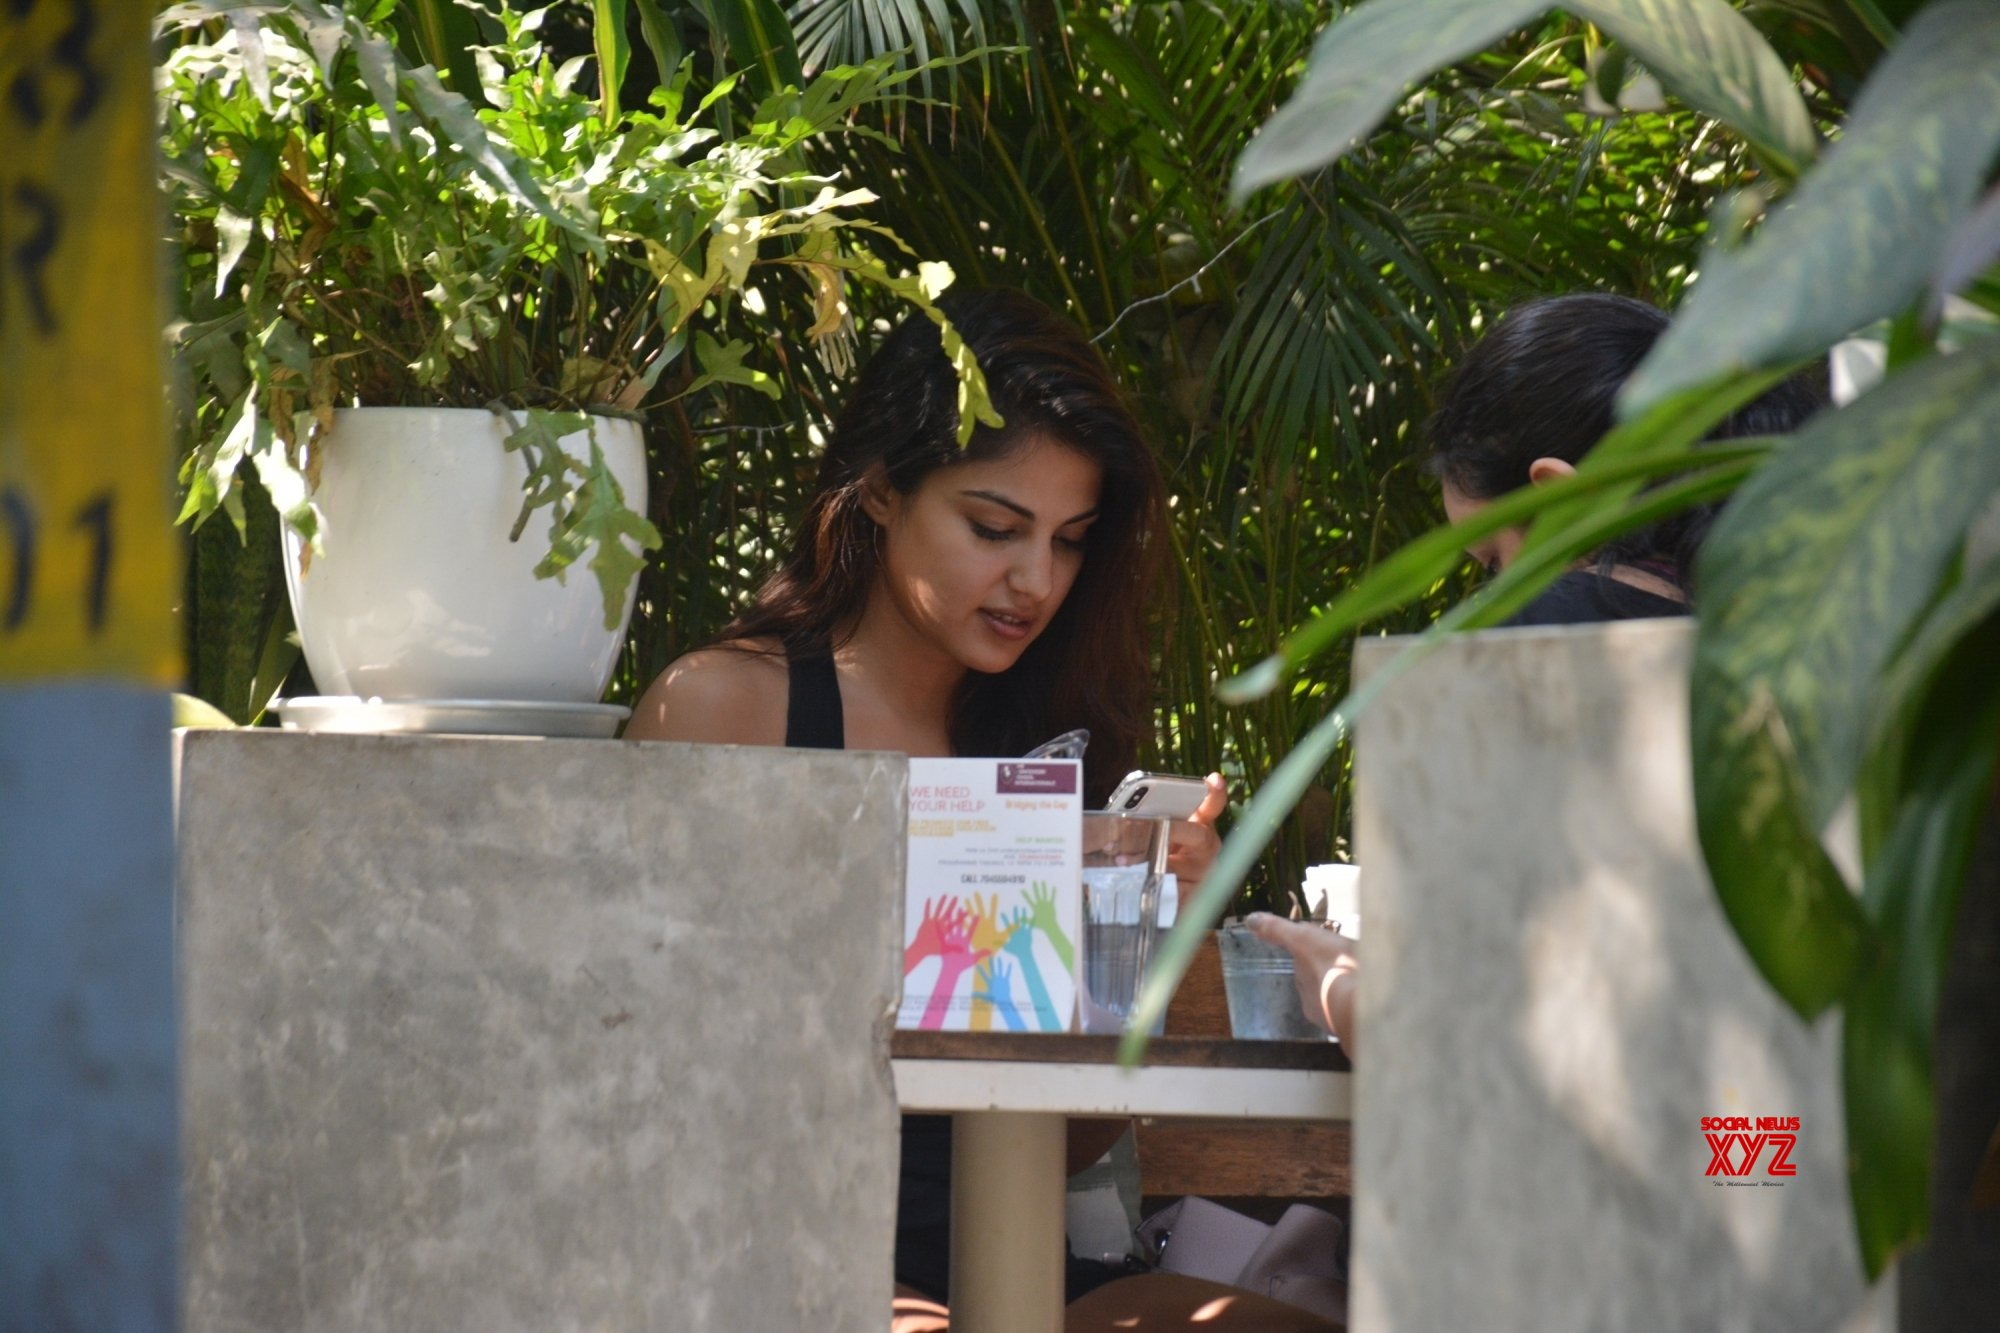 Mumbai: Rhea Chakraborty at a Bandra restaurant #Gallery